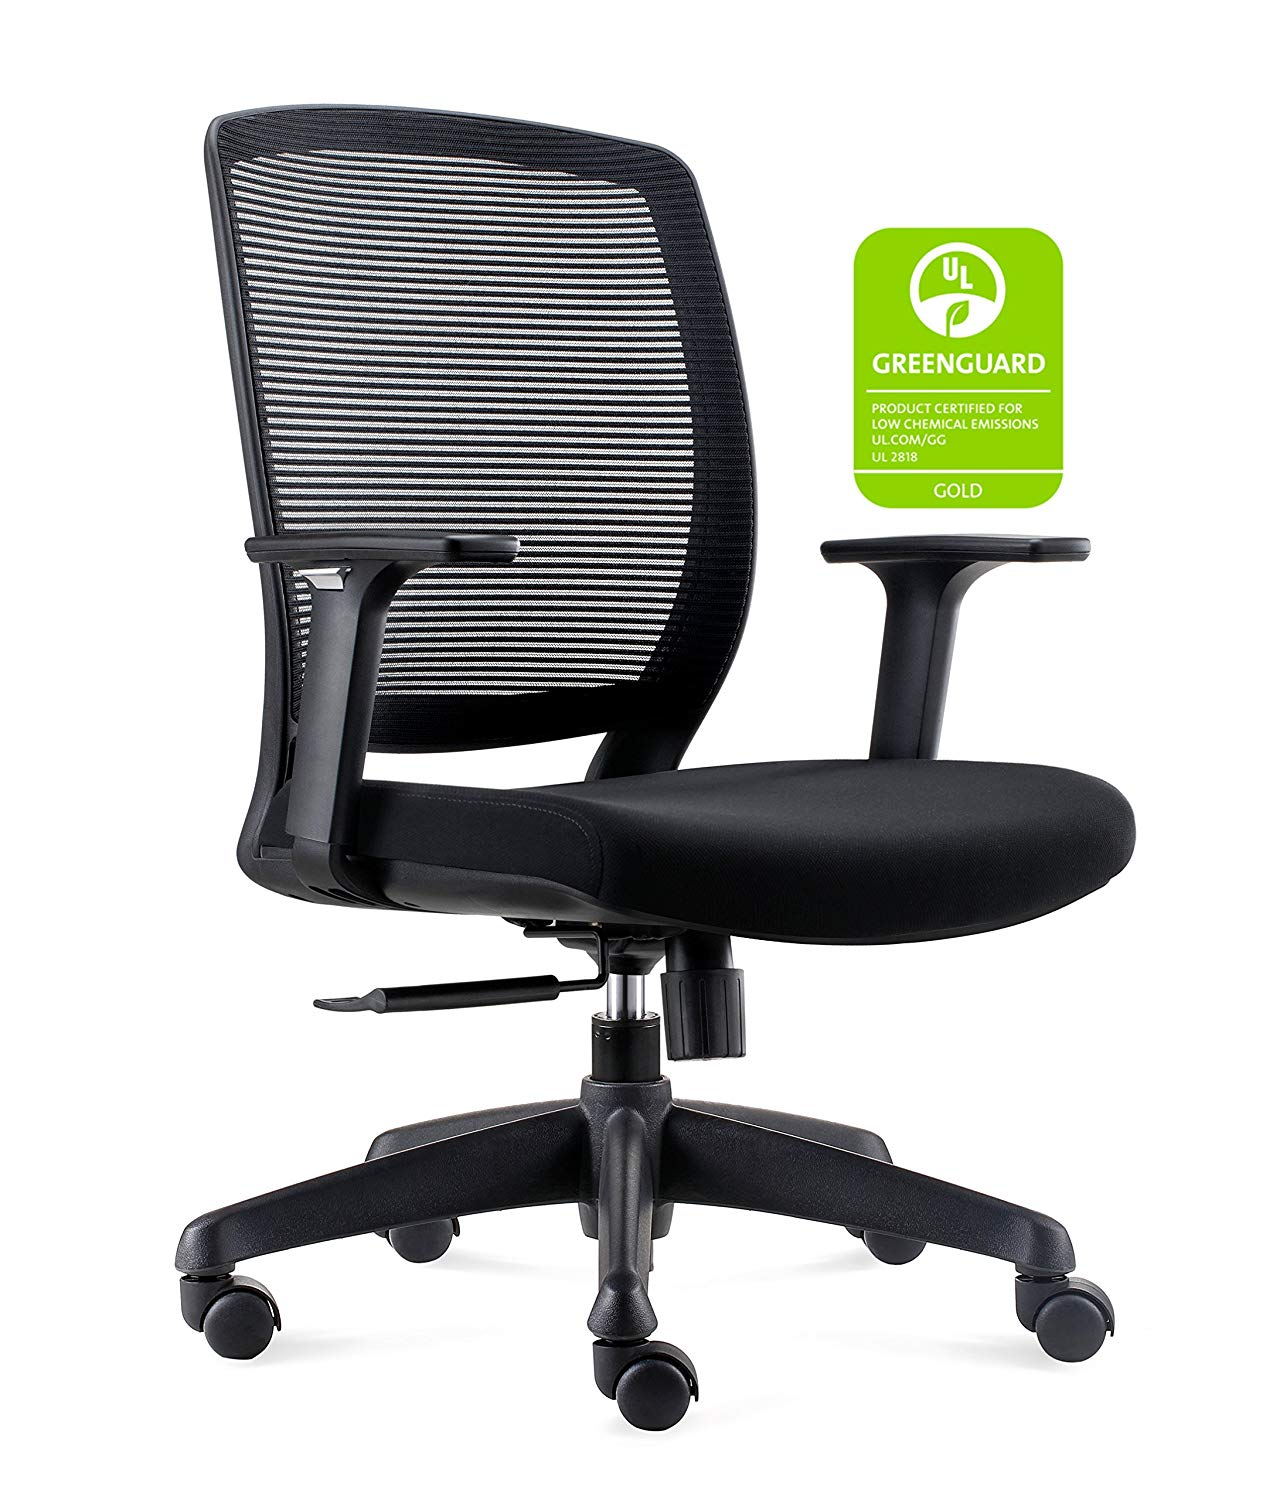 Chairlin Mid-Back Modern Ergonomic Mesh Fabric Computer Chair